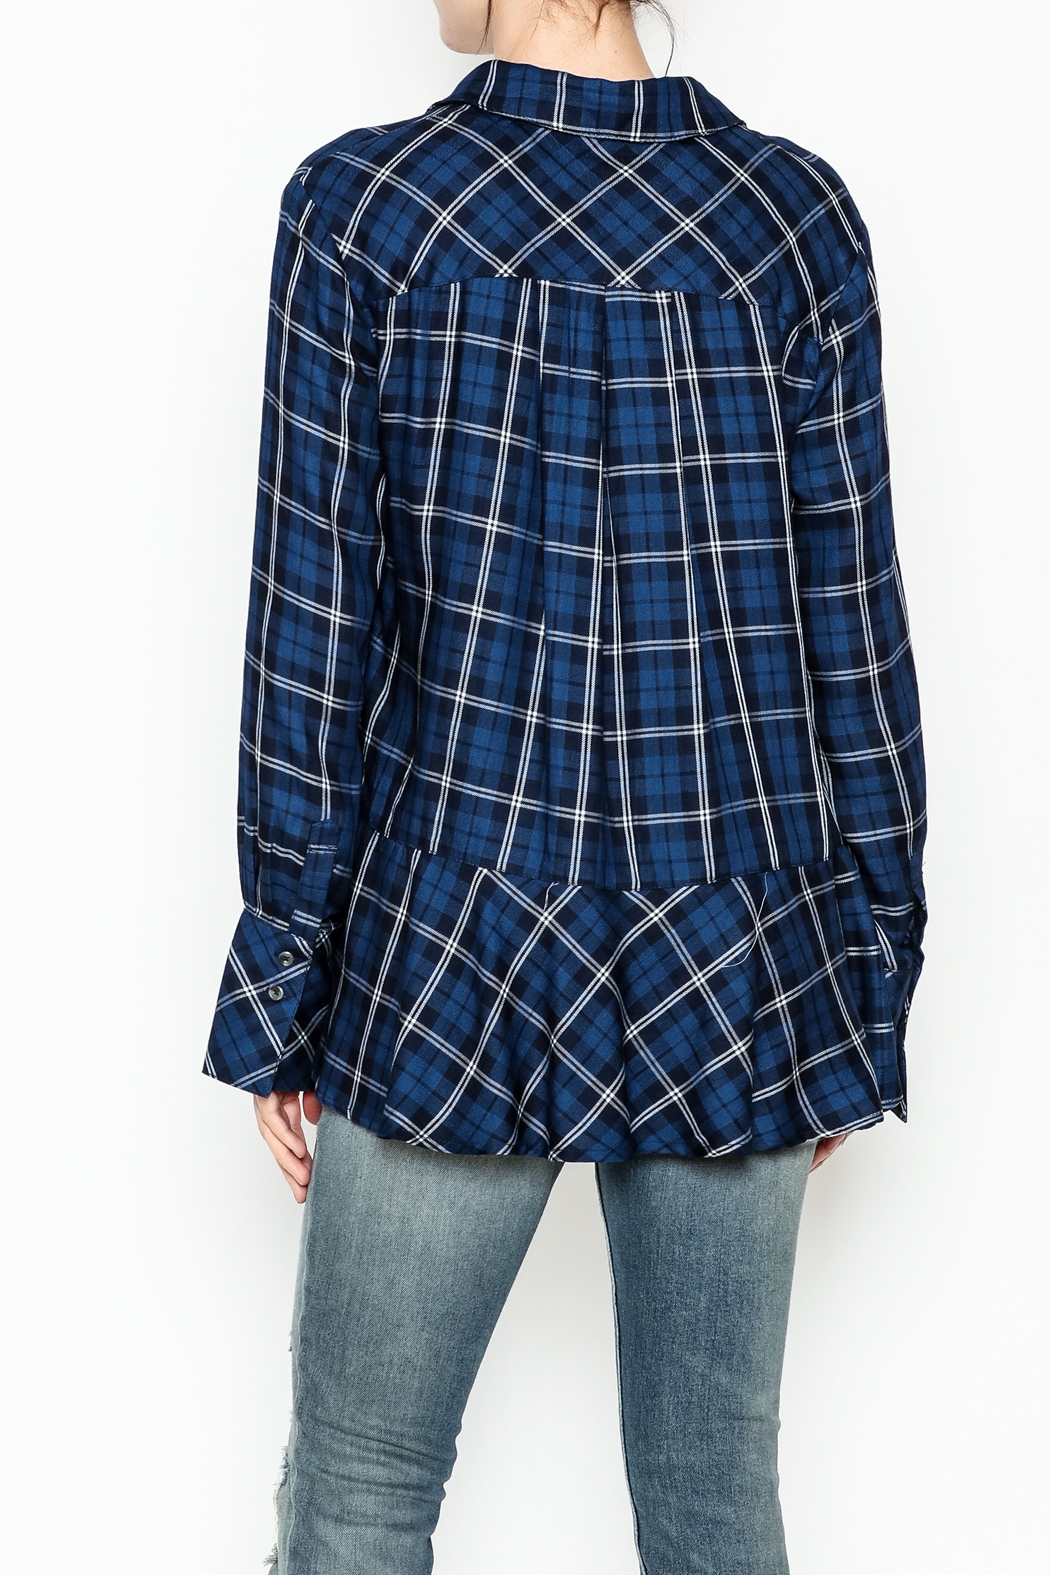 Current Air Plaid Button Down Shirt - Back Cropped Image